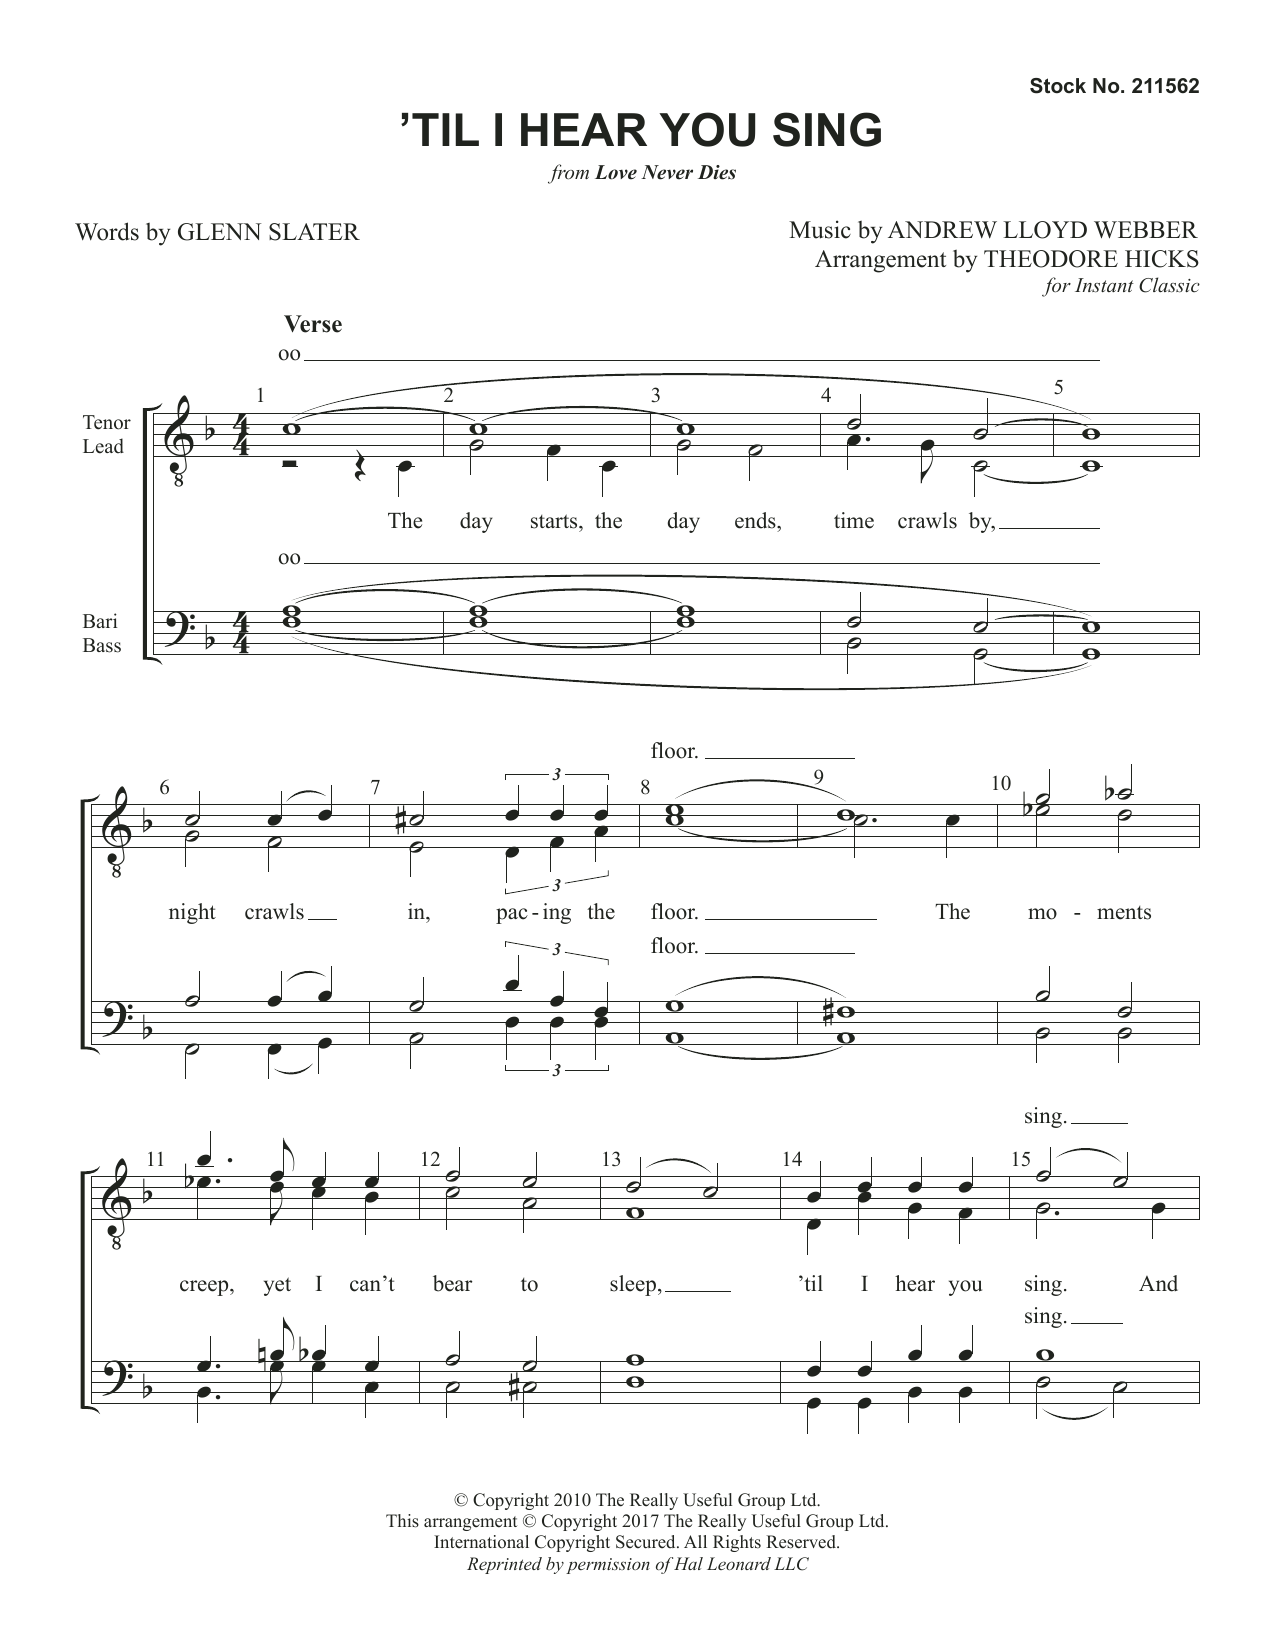 'Til I Hear You Sing (from Love Never Dies) (arr. Theodore Hicks) Sheet Music